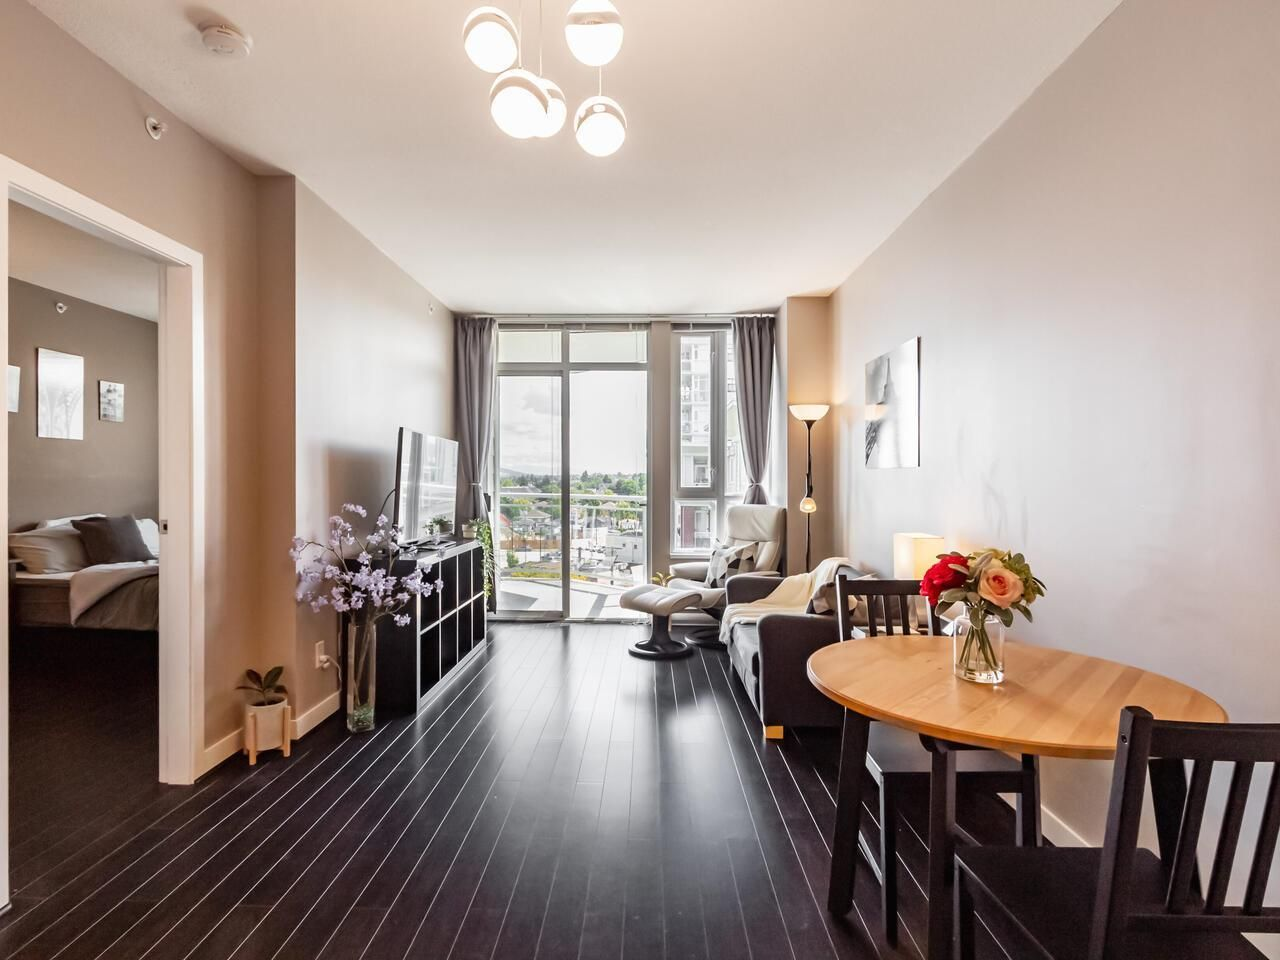 """Main Photo: 709 4078 KNIGHT Street in Vancouver: Knight Condo for sale in """"King Edward Village"""" (Vancouver East)  : MLS®# R2591633"""